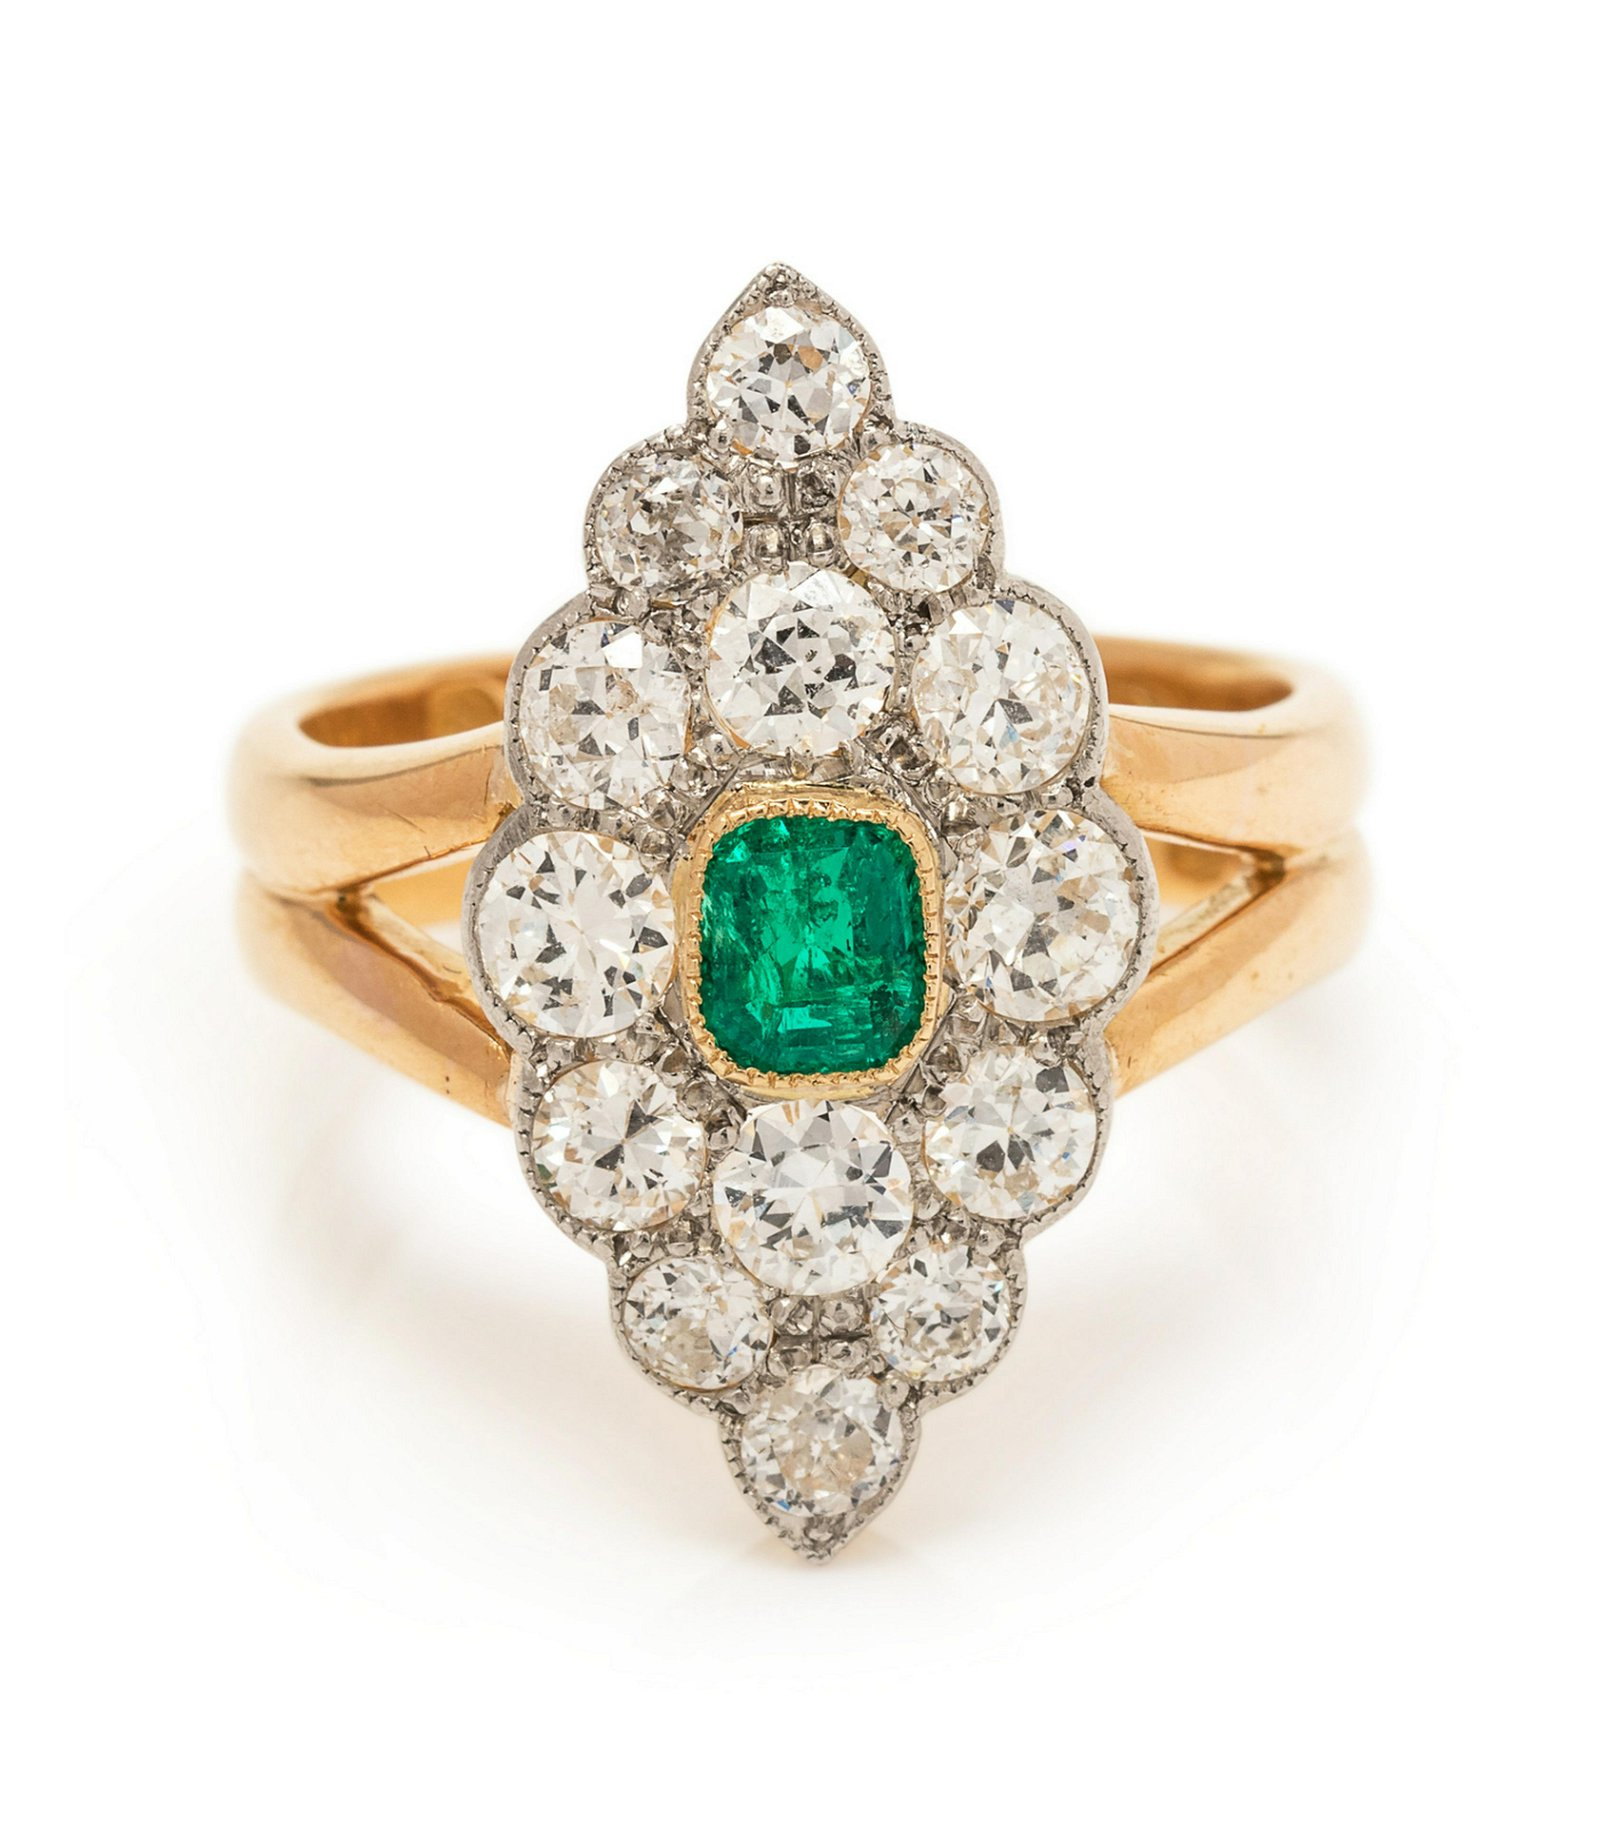 A Platinum Topped 22 Karat Yellow Gold, Emerald and